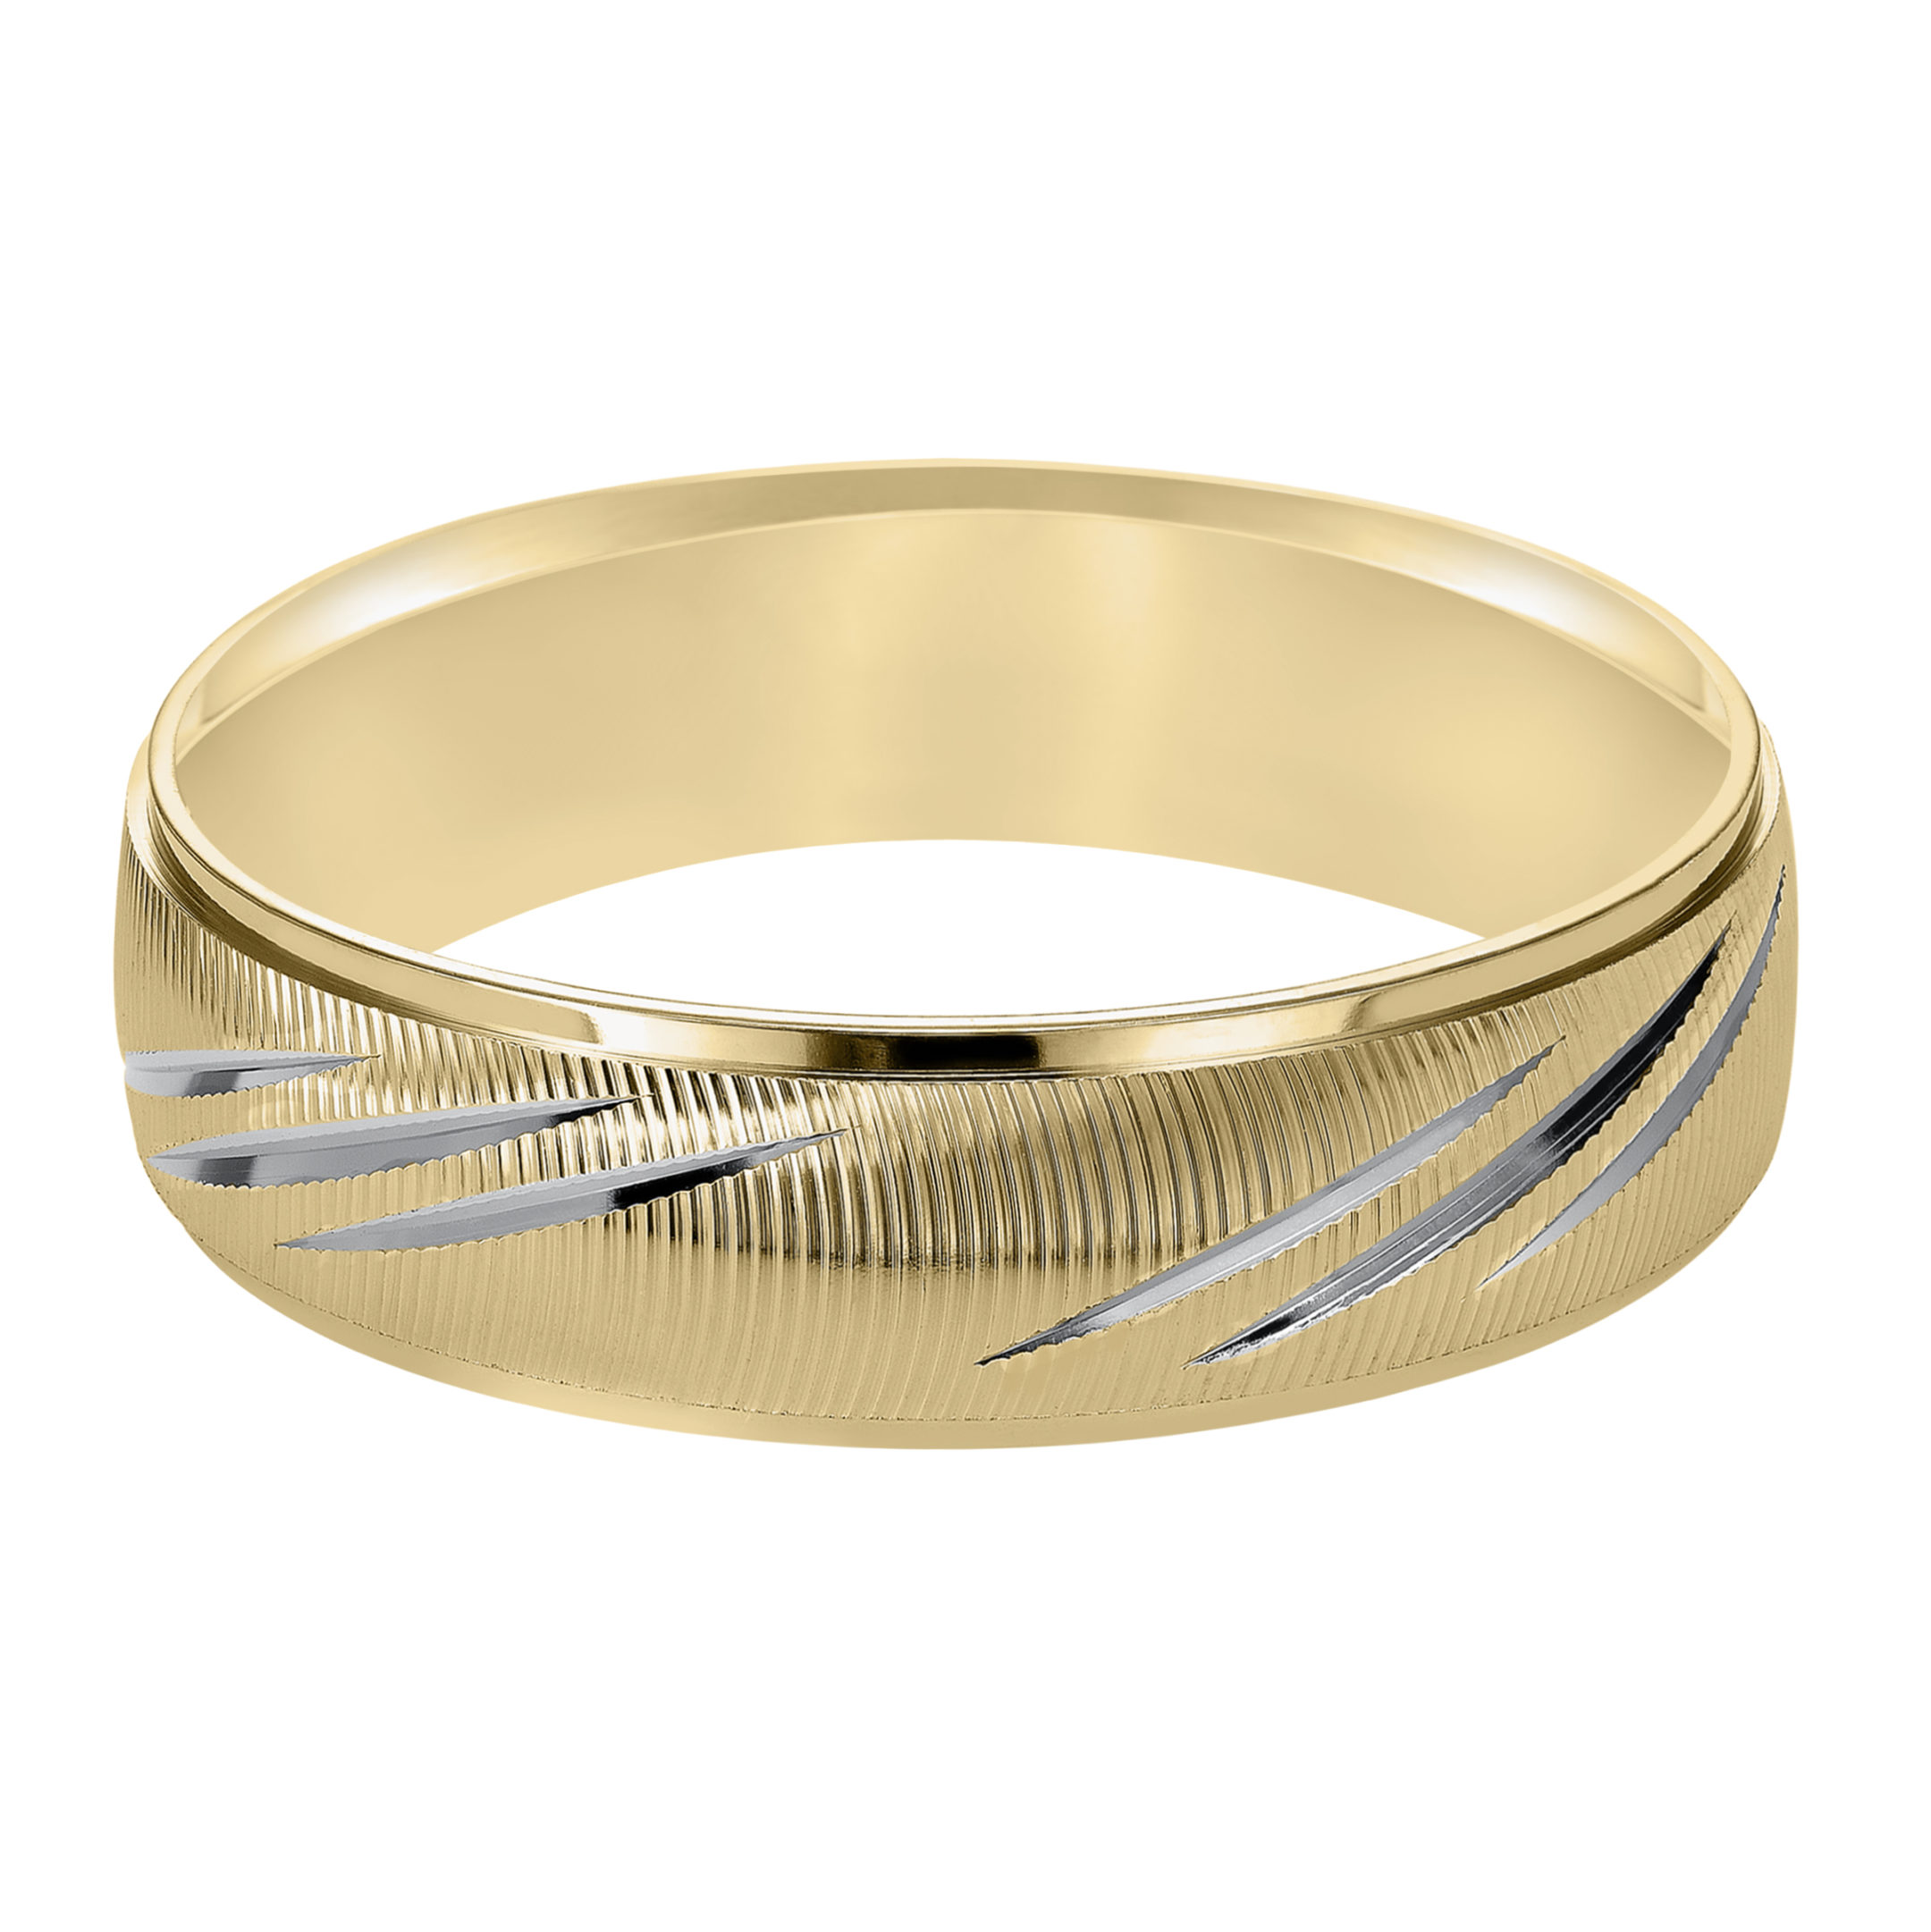 Vertical Fine Line Finish & Round Edges Wedding Band in 14k Yellow Gold & Rhodium - flat view